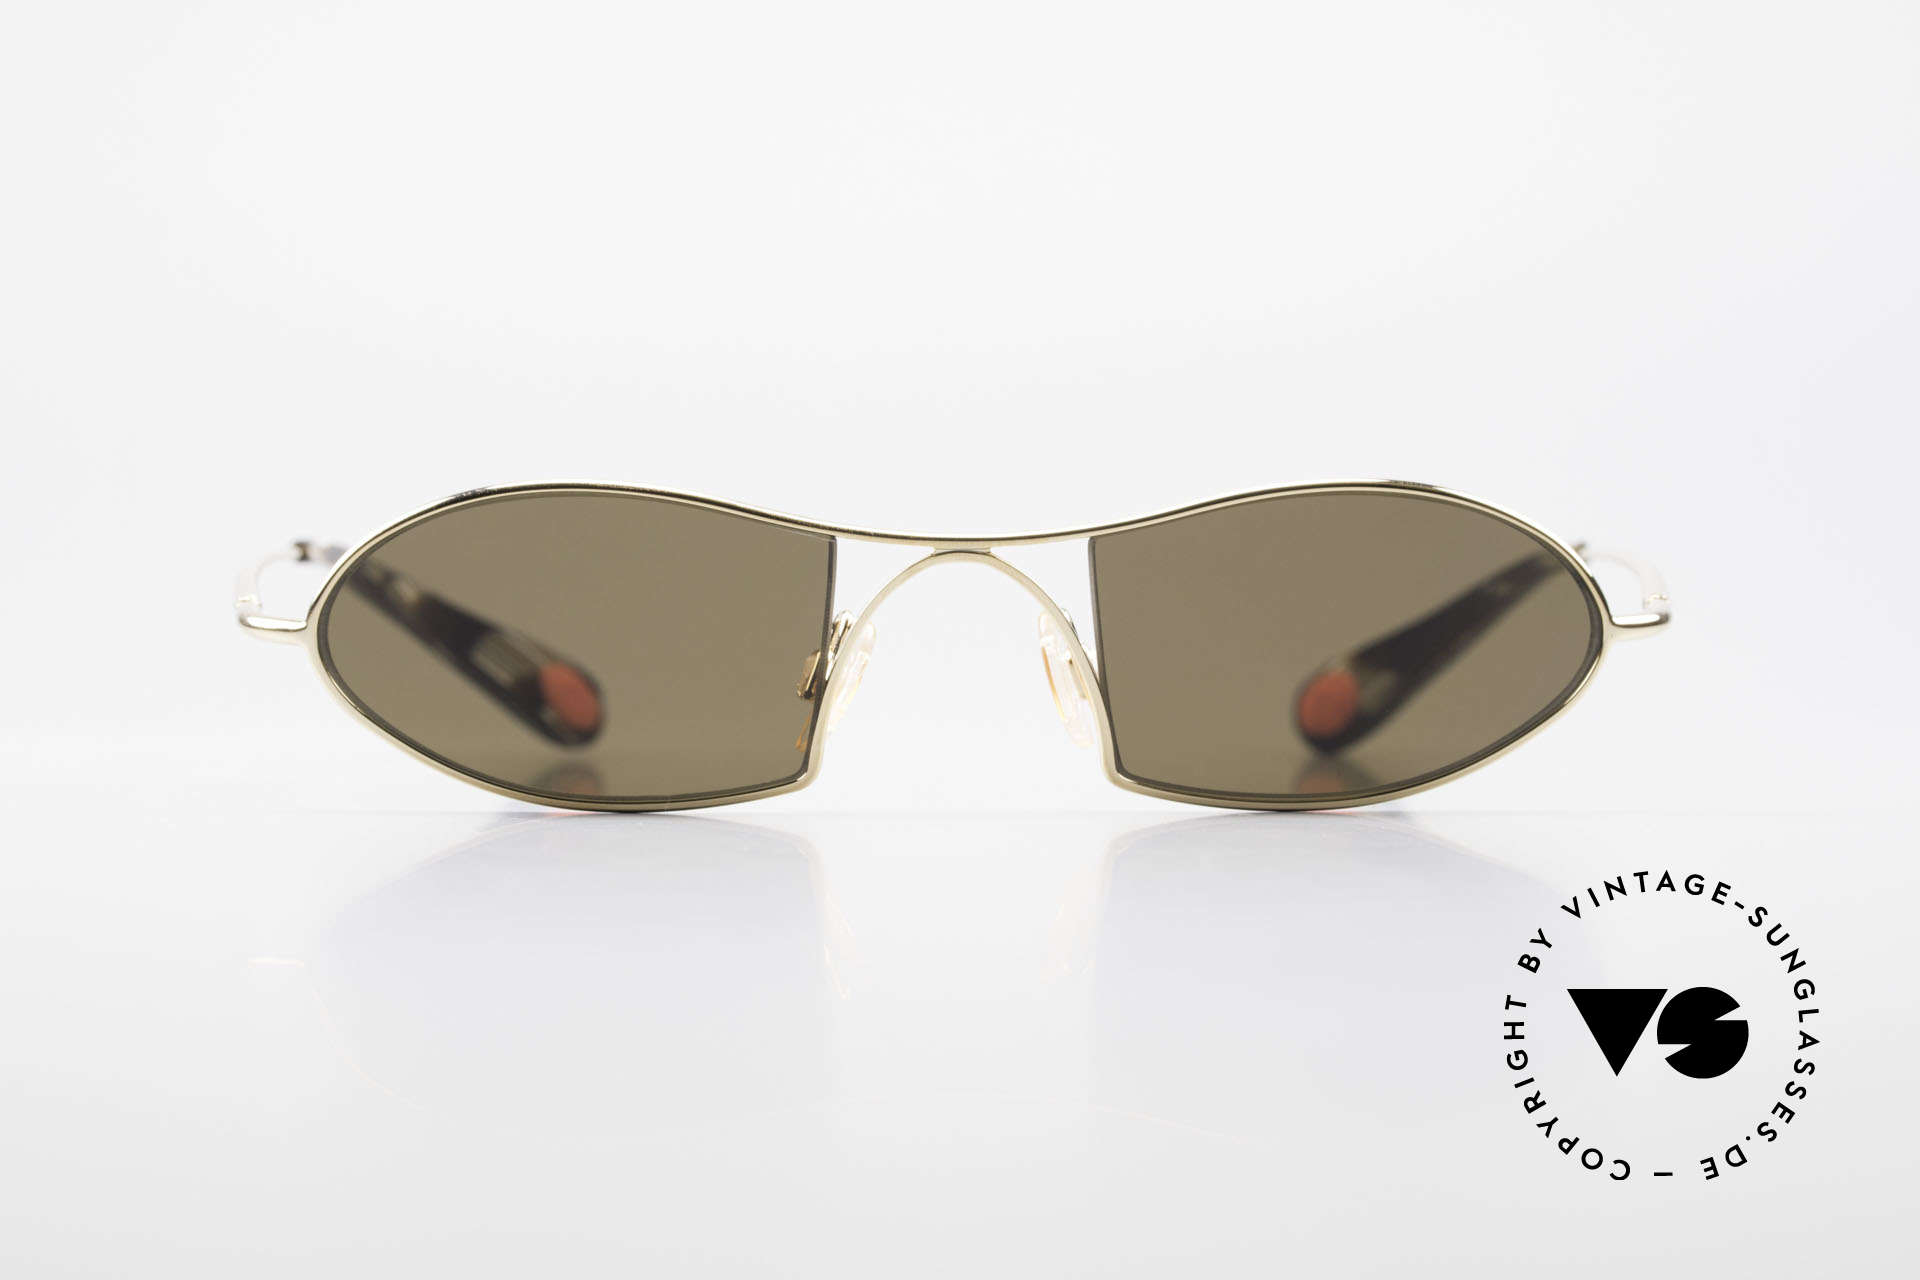 Bugatti 350 Odotype Men's Designer Luxury Shades, distinctive design of the ODOTYPE SERIES, Made for Men